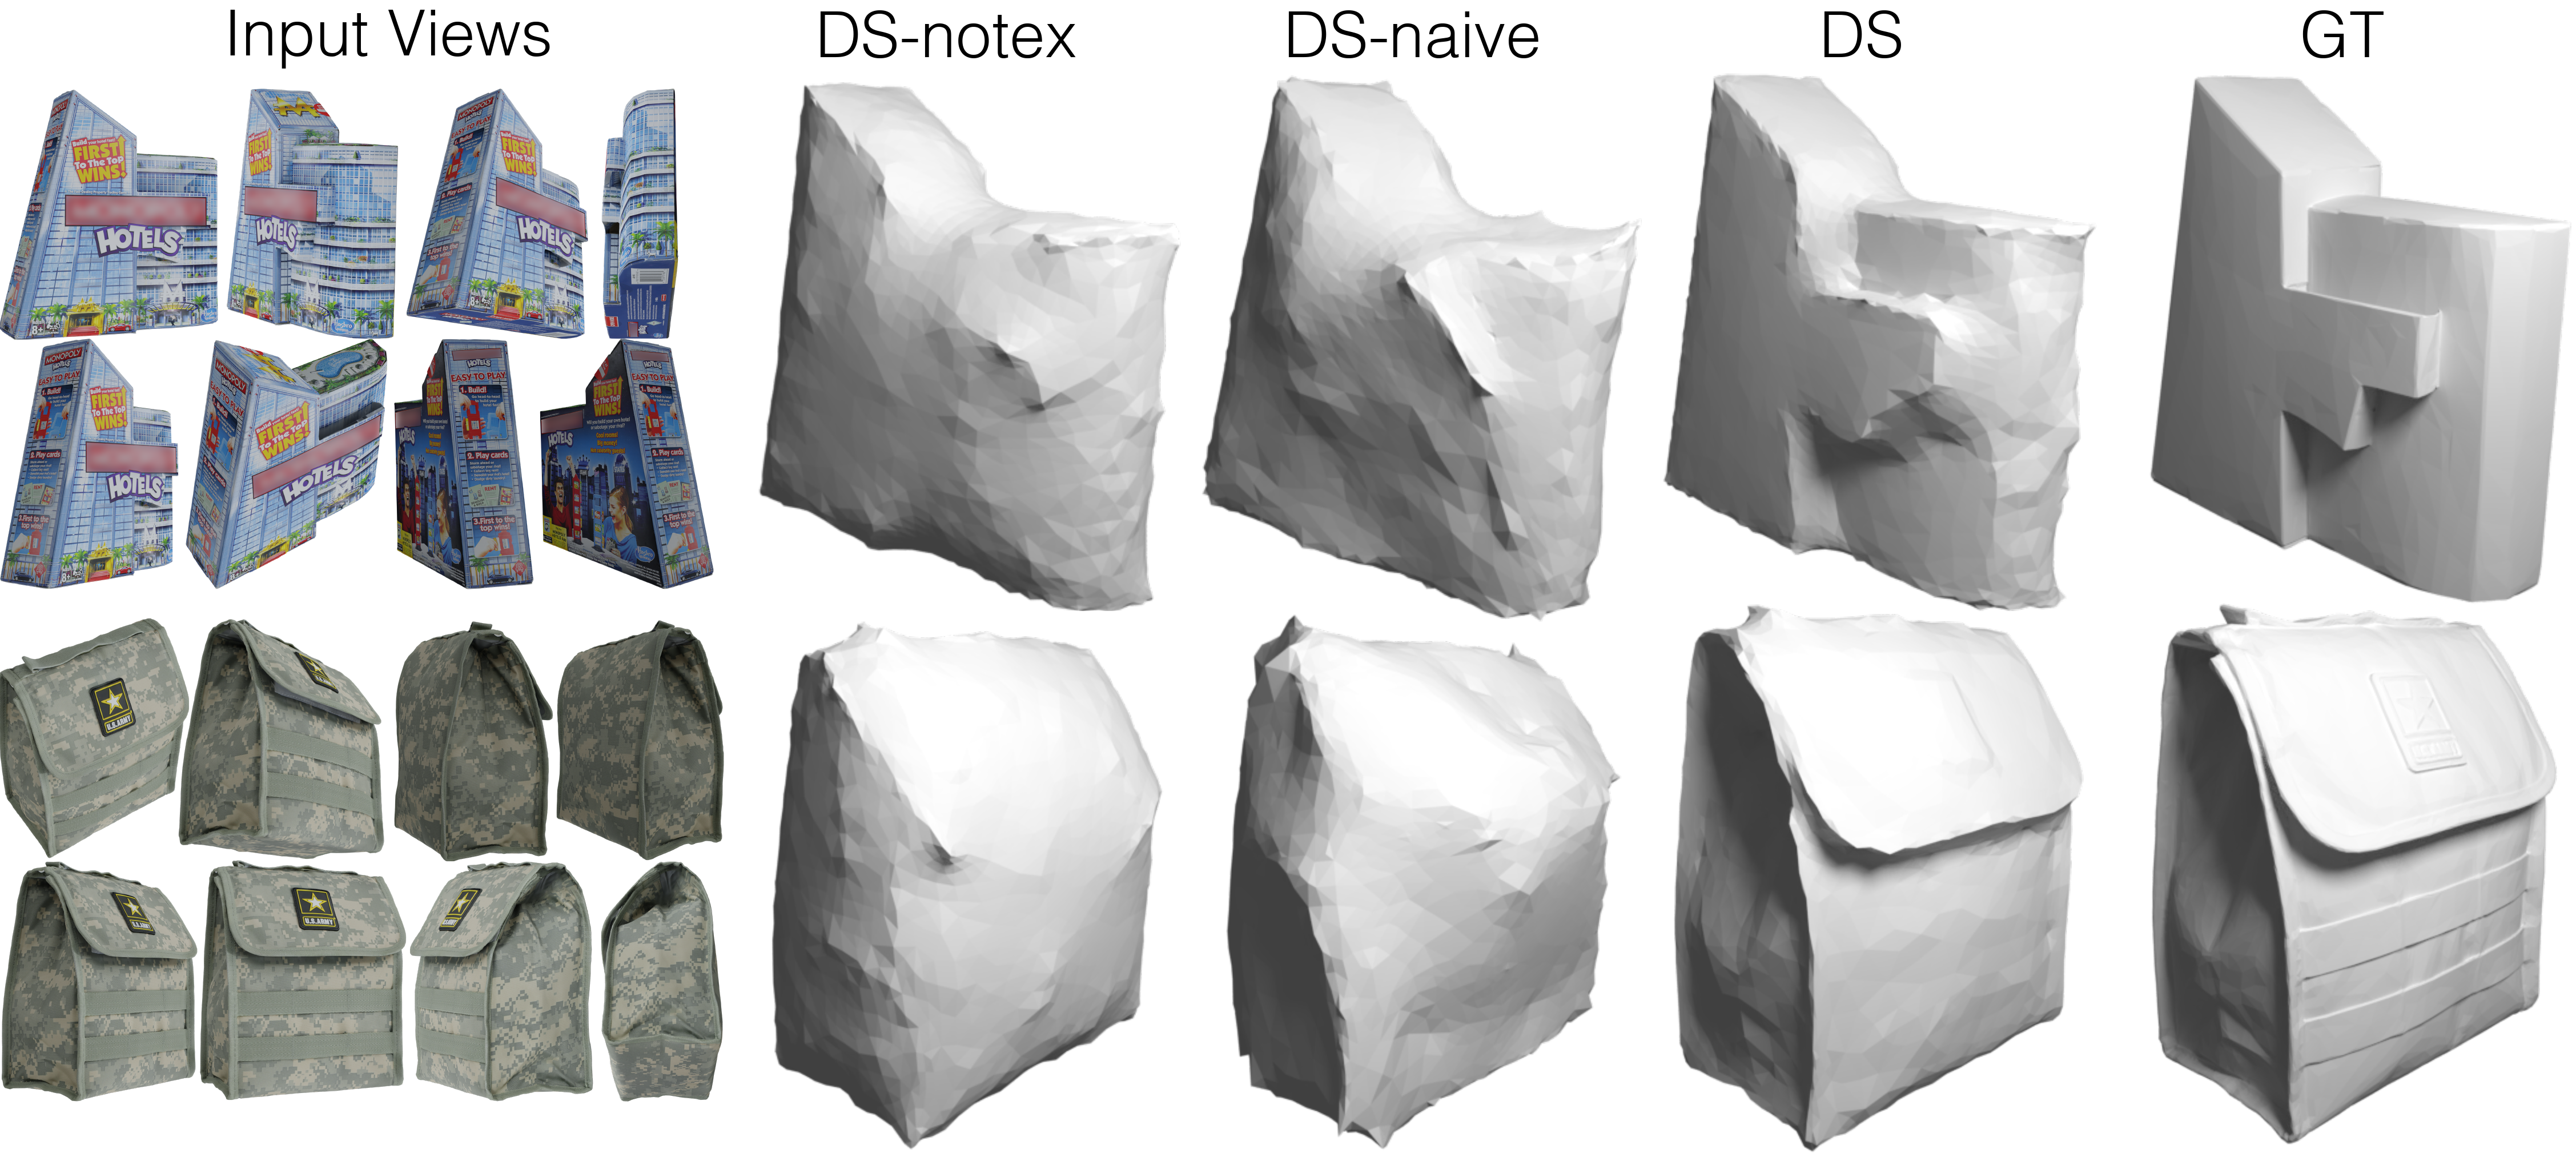 DSwithout texture (DS-notex), DS-naive and DSwith